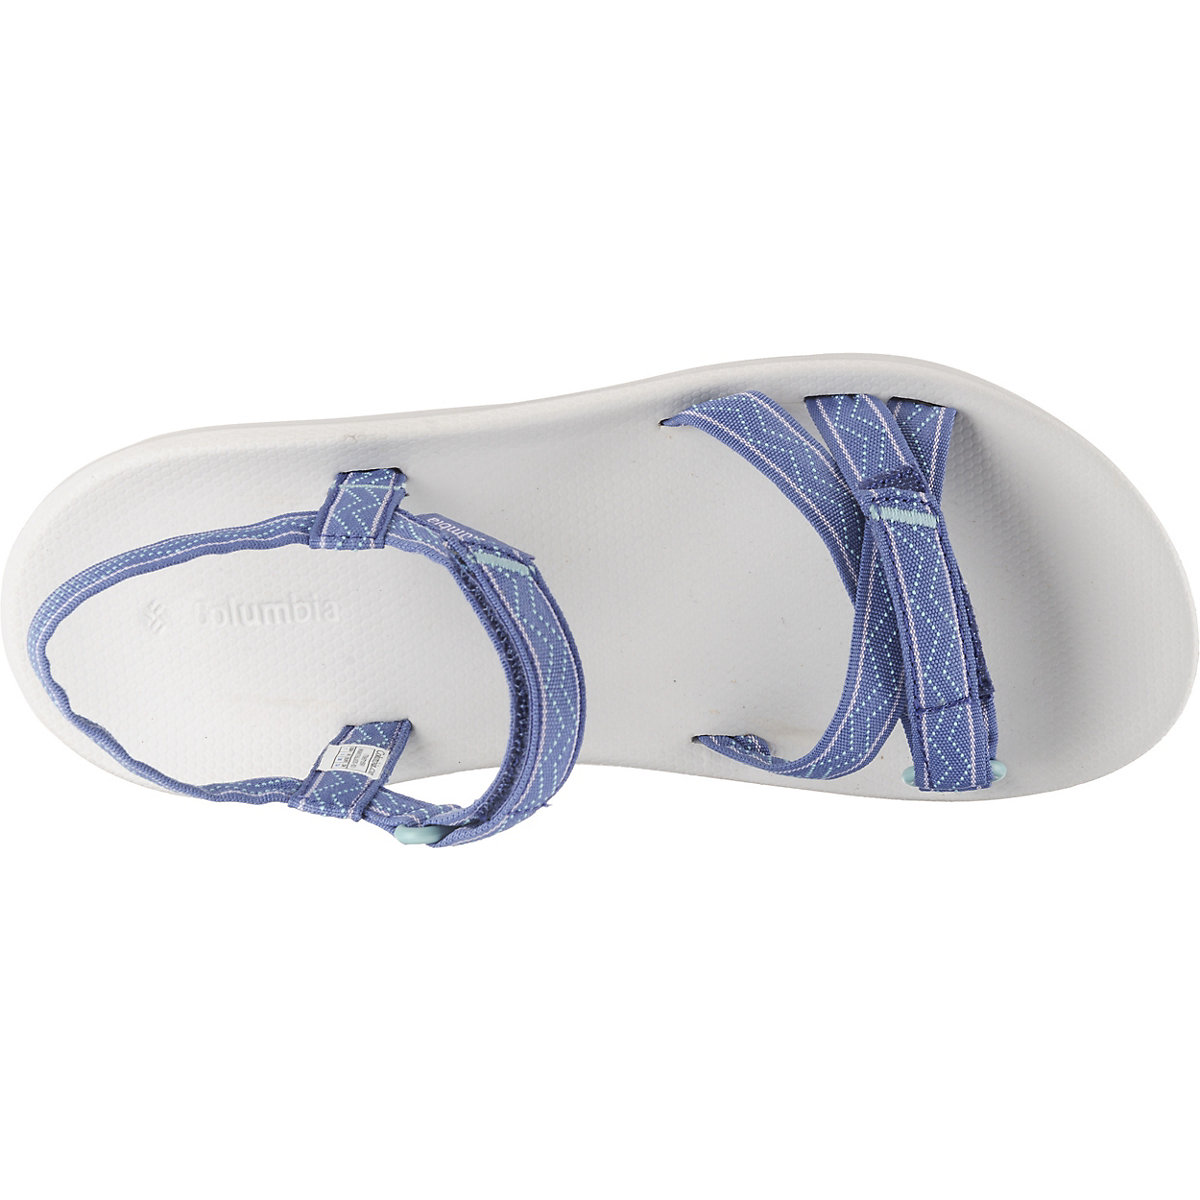 Columbia, Wave Train™ Outdoorsandalen, Violett